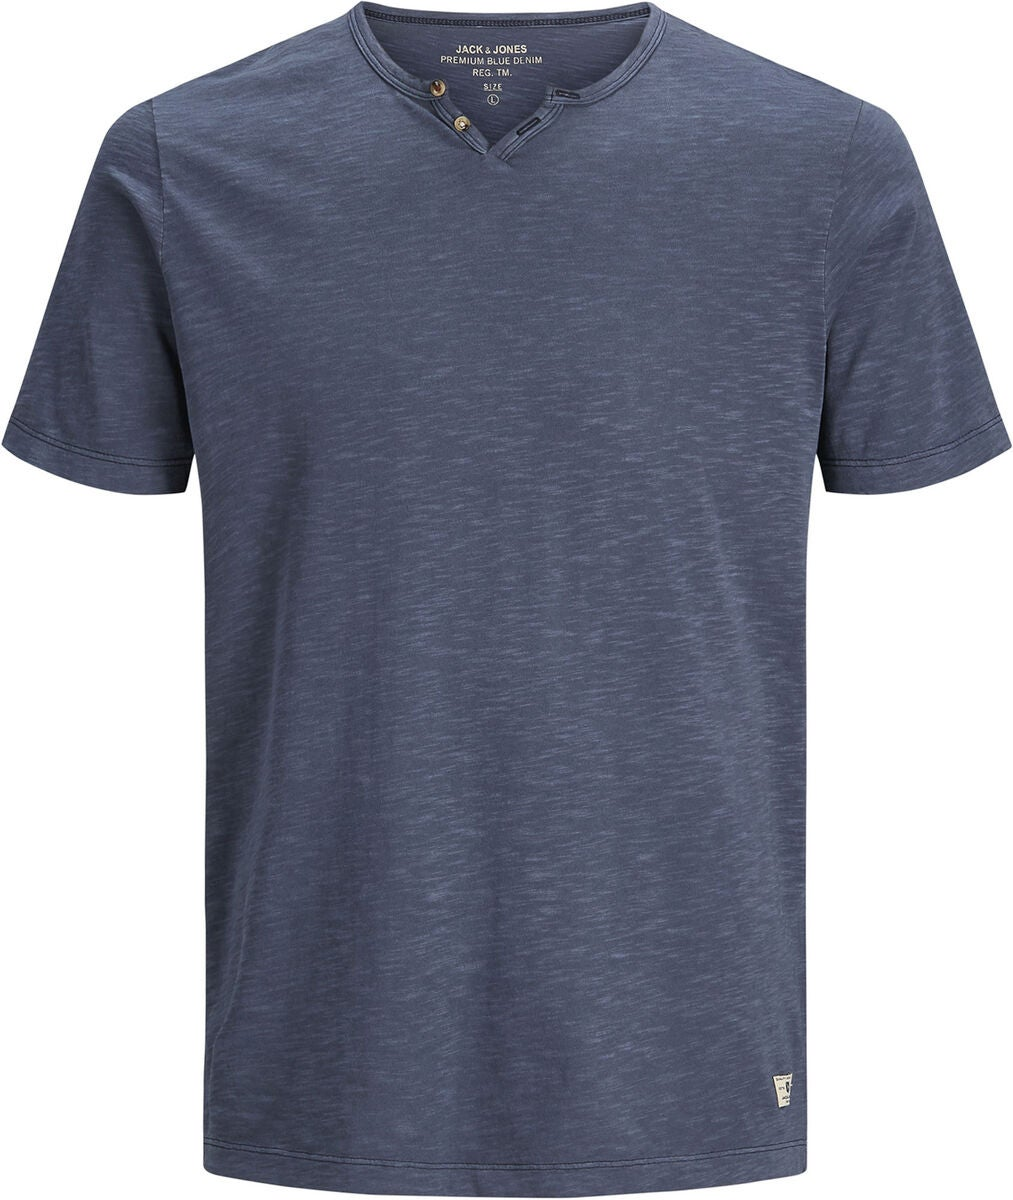 Jack & Jones Treyden T-Shirt, Navy Blazer